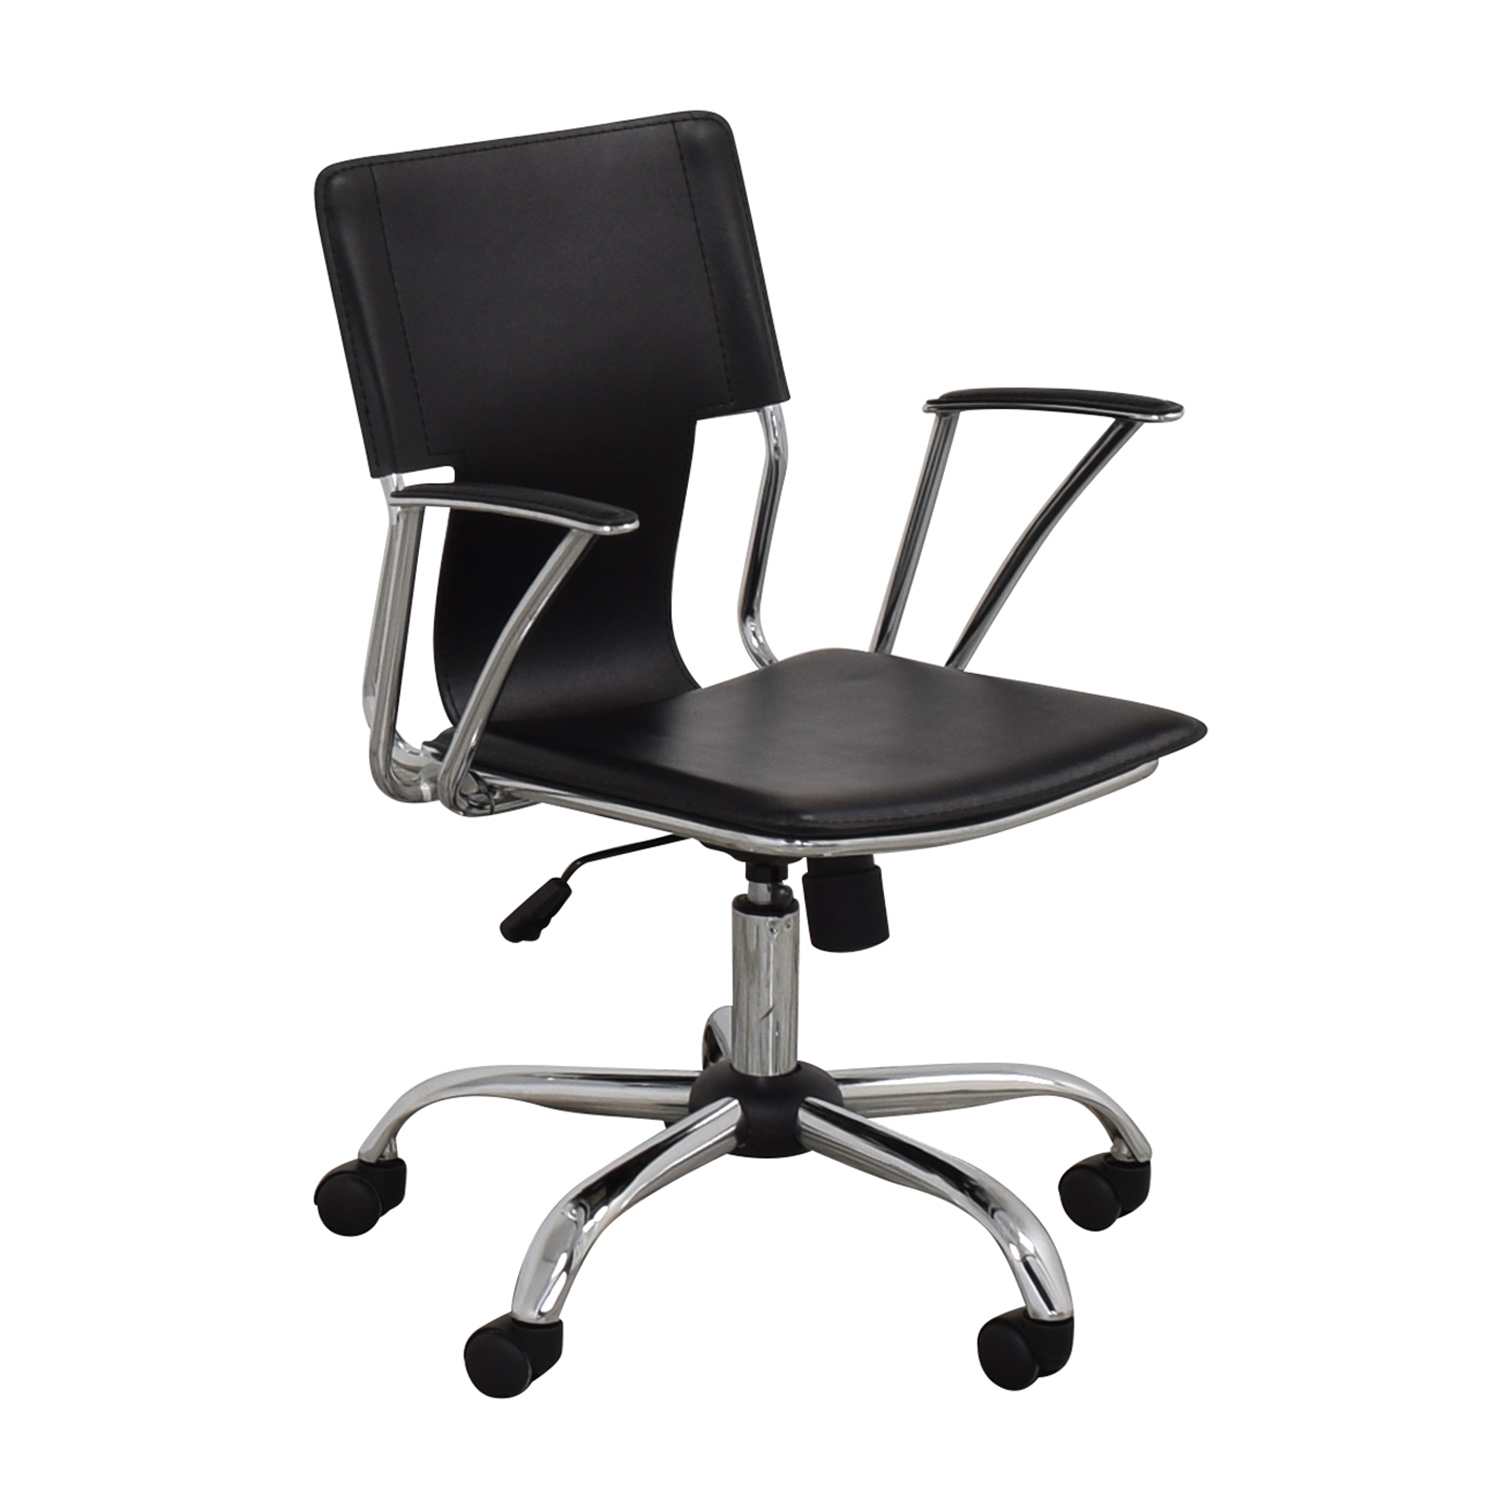 Bed Bath & Beyond Bed Bath & Beyond Desk Chair Home Office Chairs